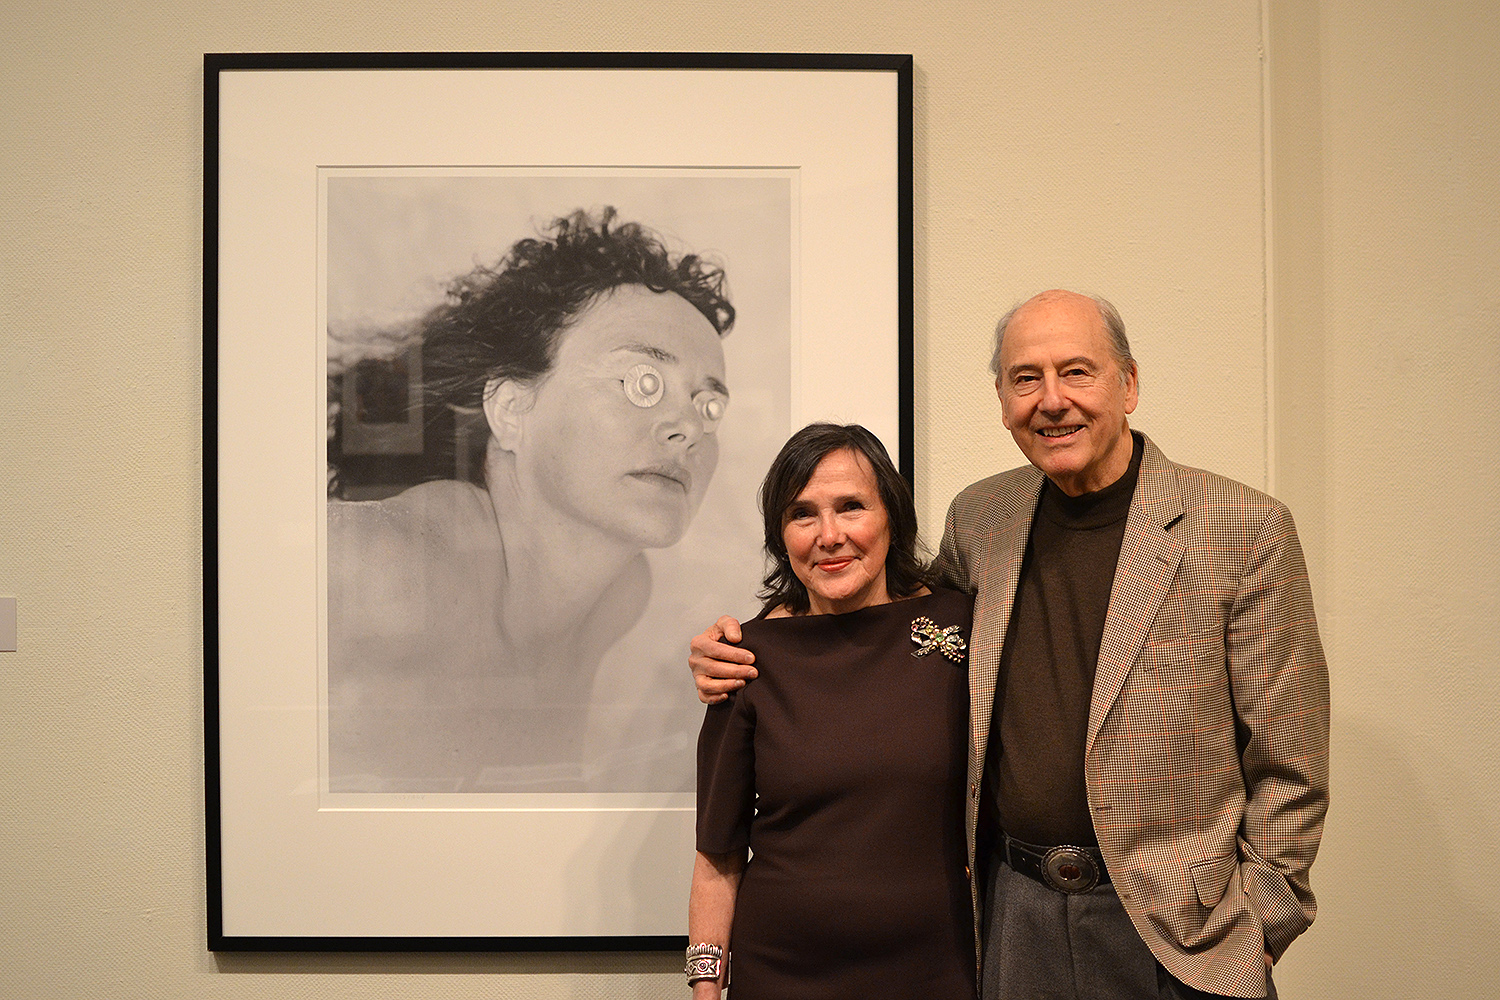 Photographing Ina, an exhibition of work by Phil Trager '56 and based on one of his two news books, opened at the Davison Art Center on March 24. It will run through May 22.